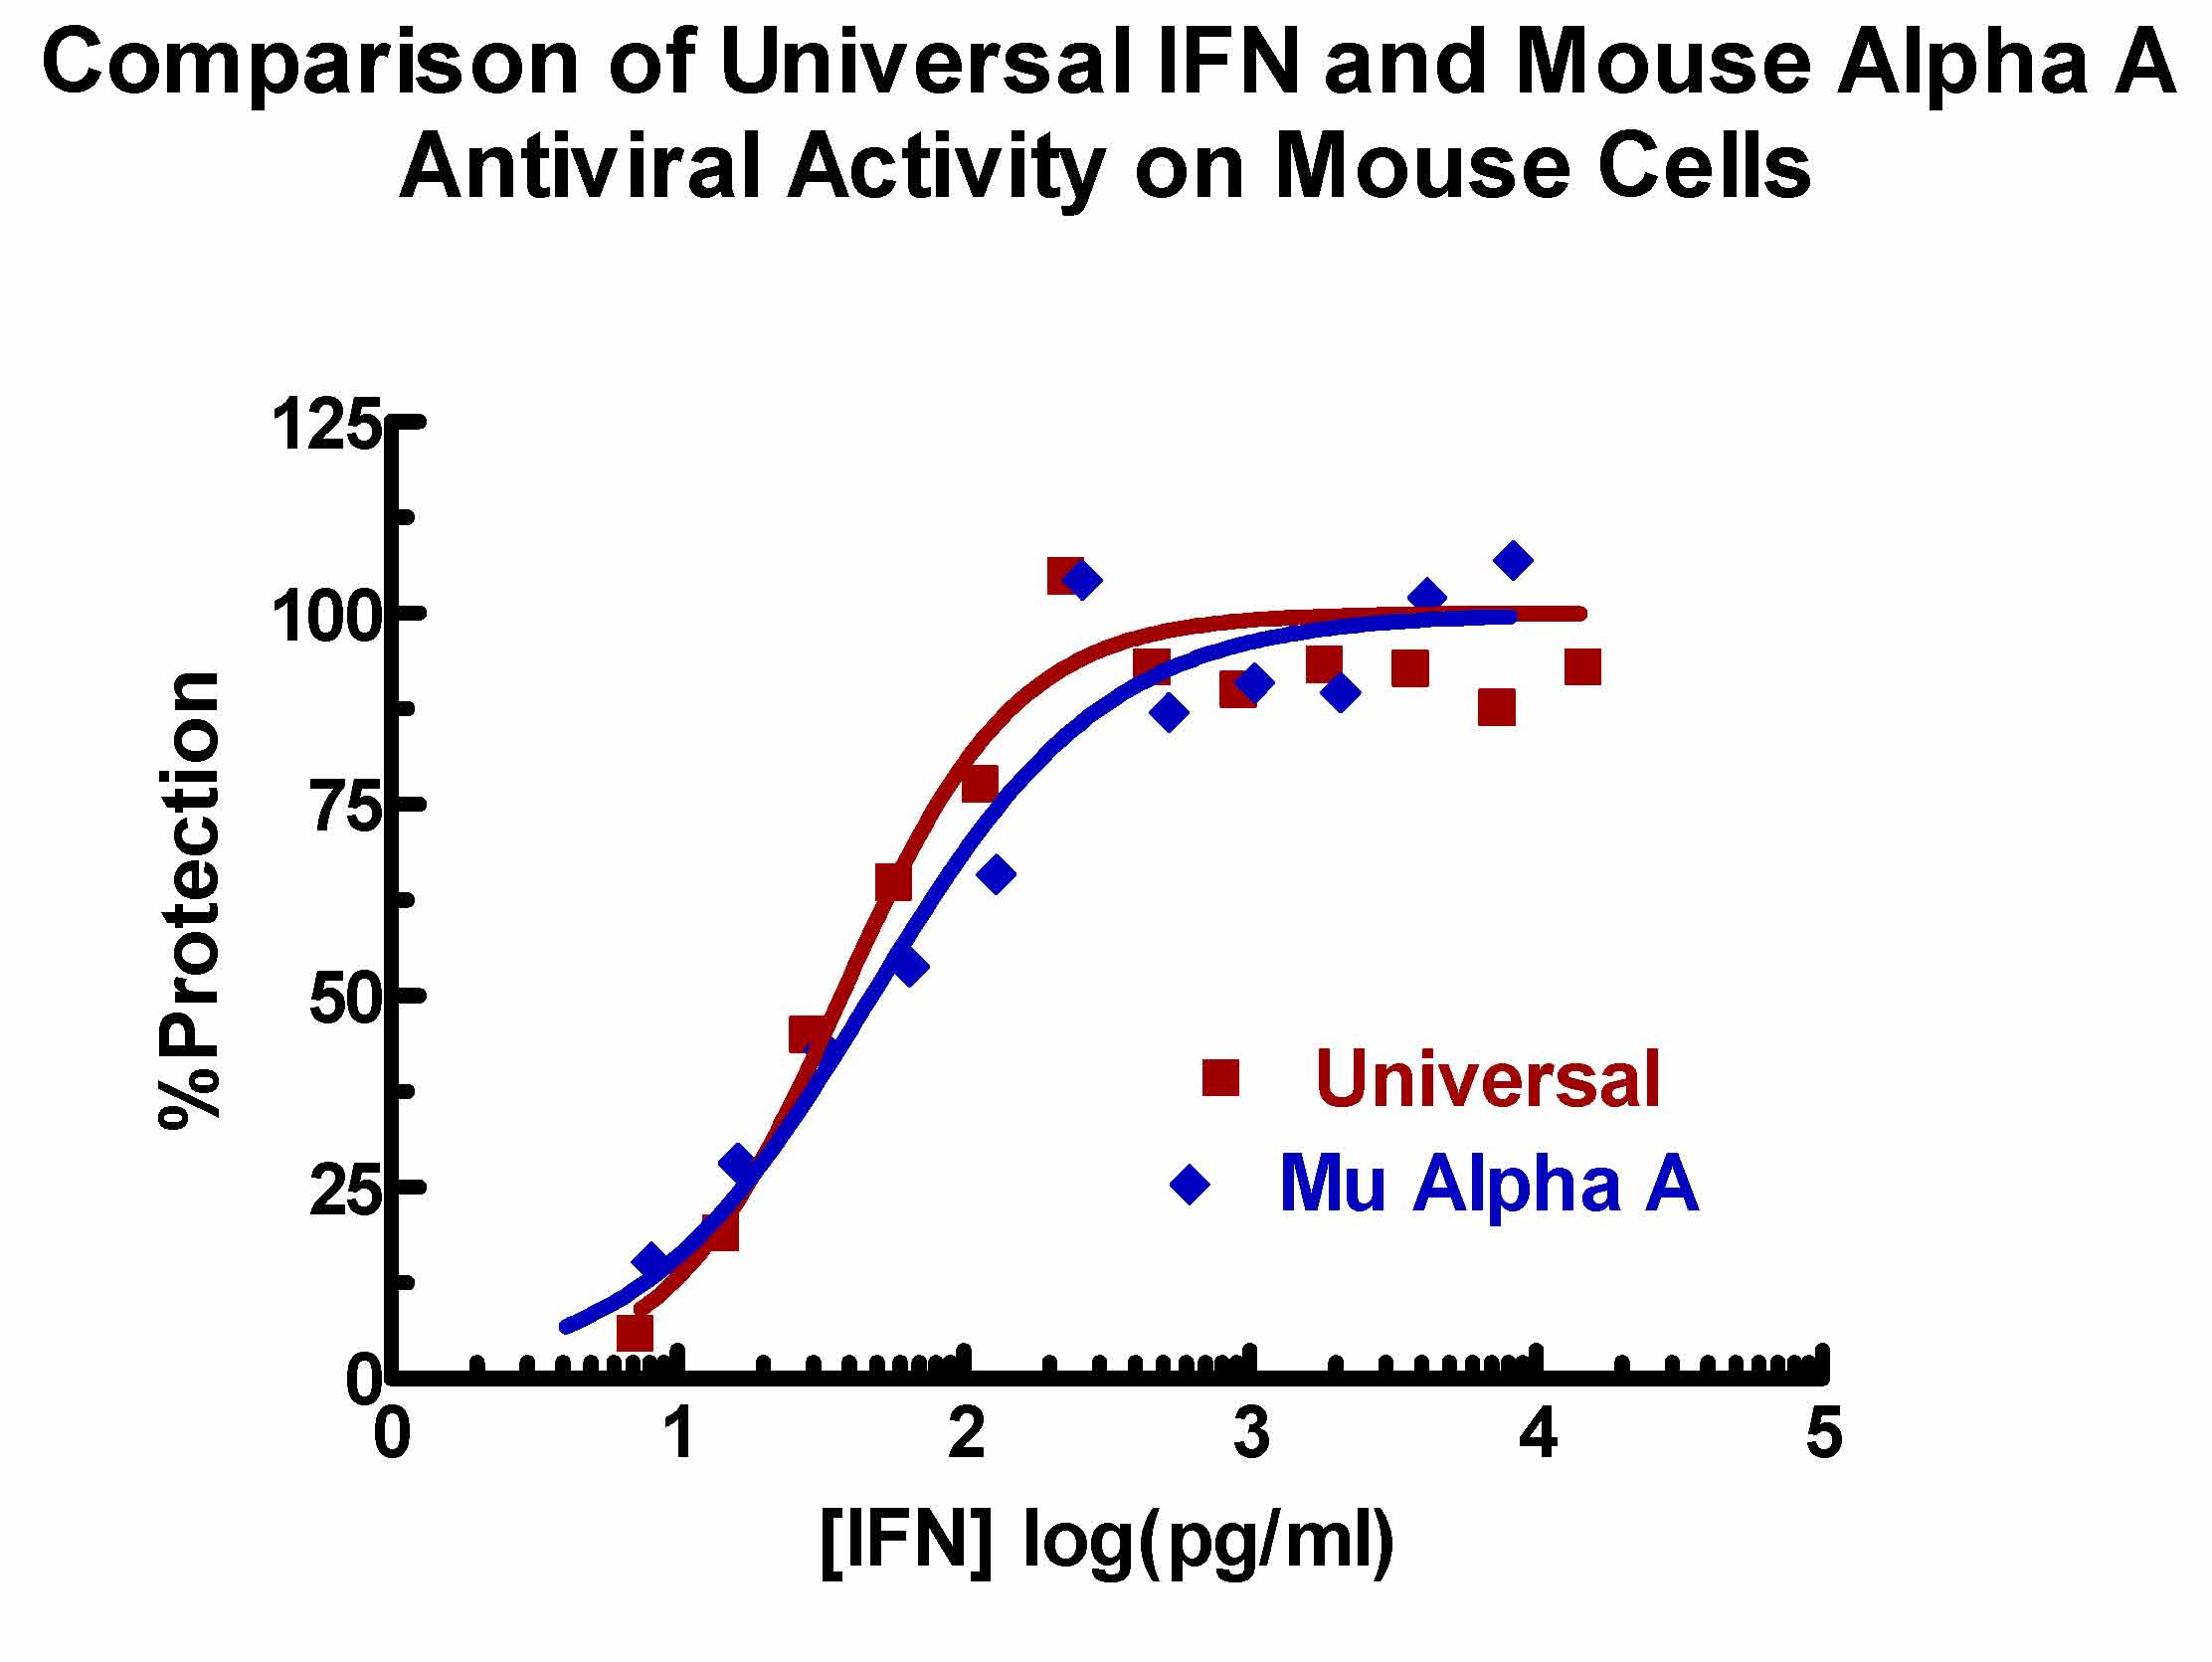 Image depicting the Antiviral Activities of PBL's Universal Type I Interferon and Mouse Interferon Alpha A on Mouse Cells as determined in an L929/EMCV CPE assay